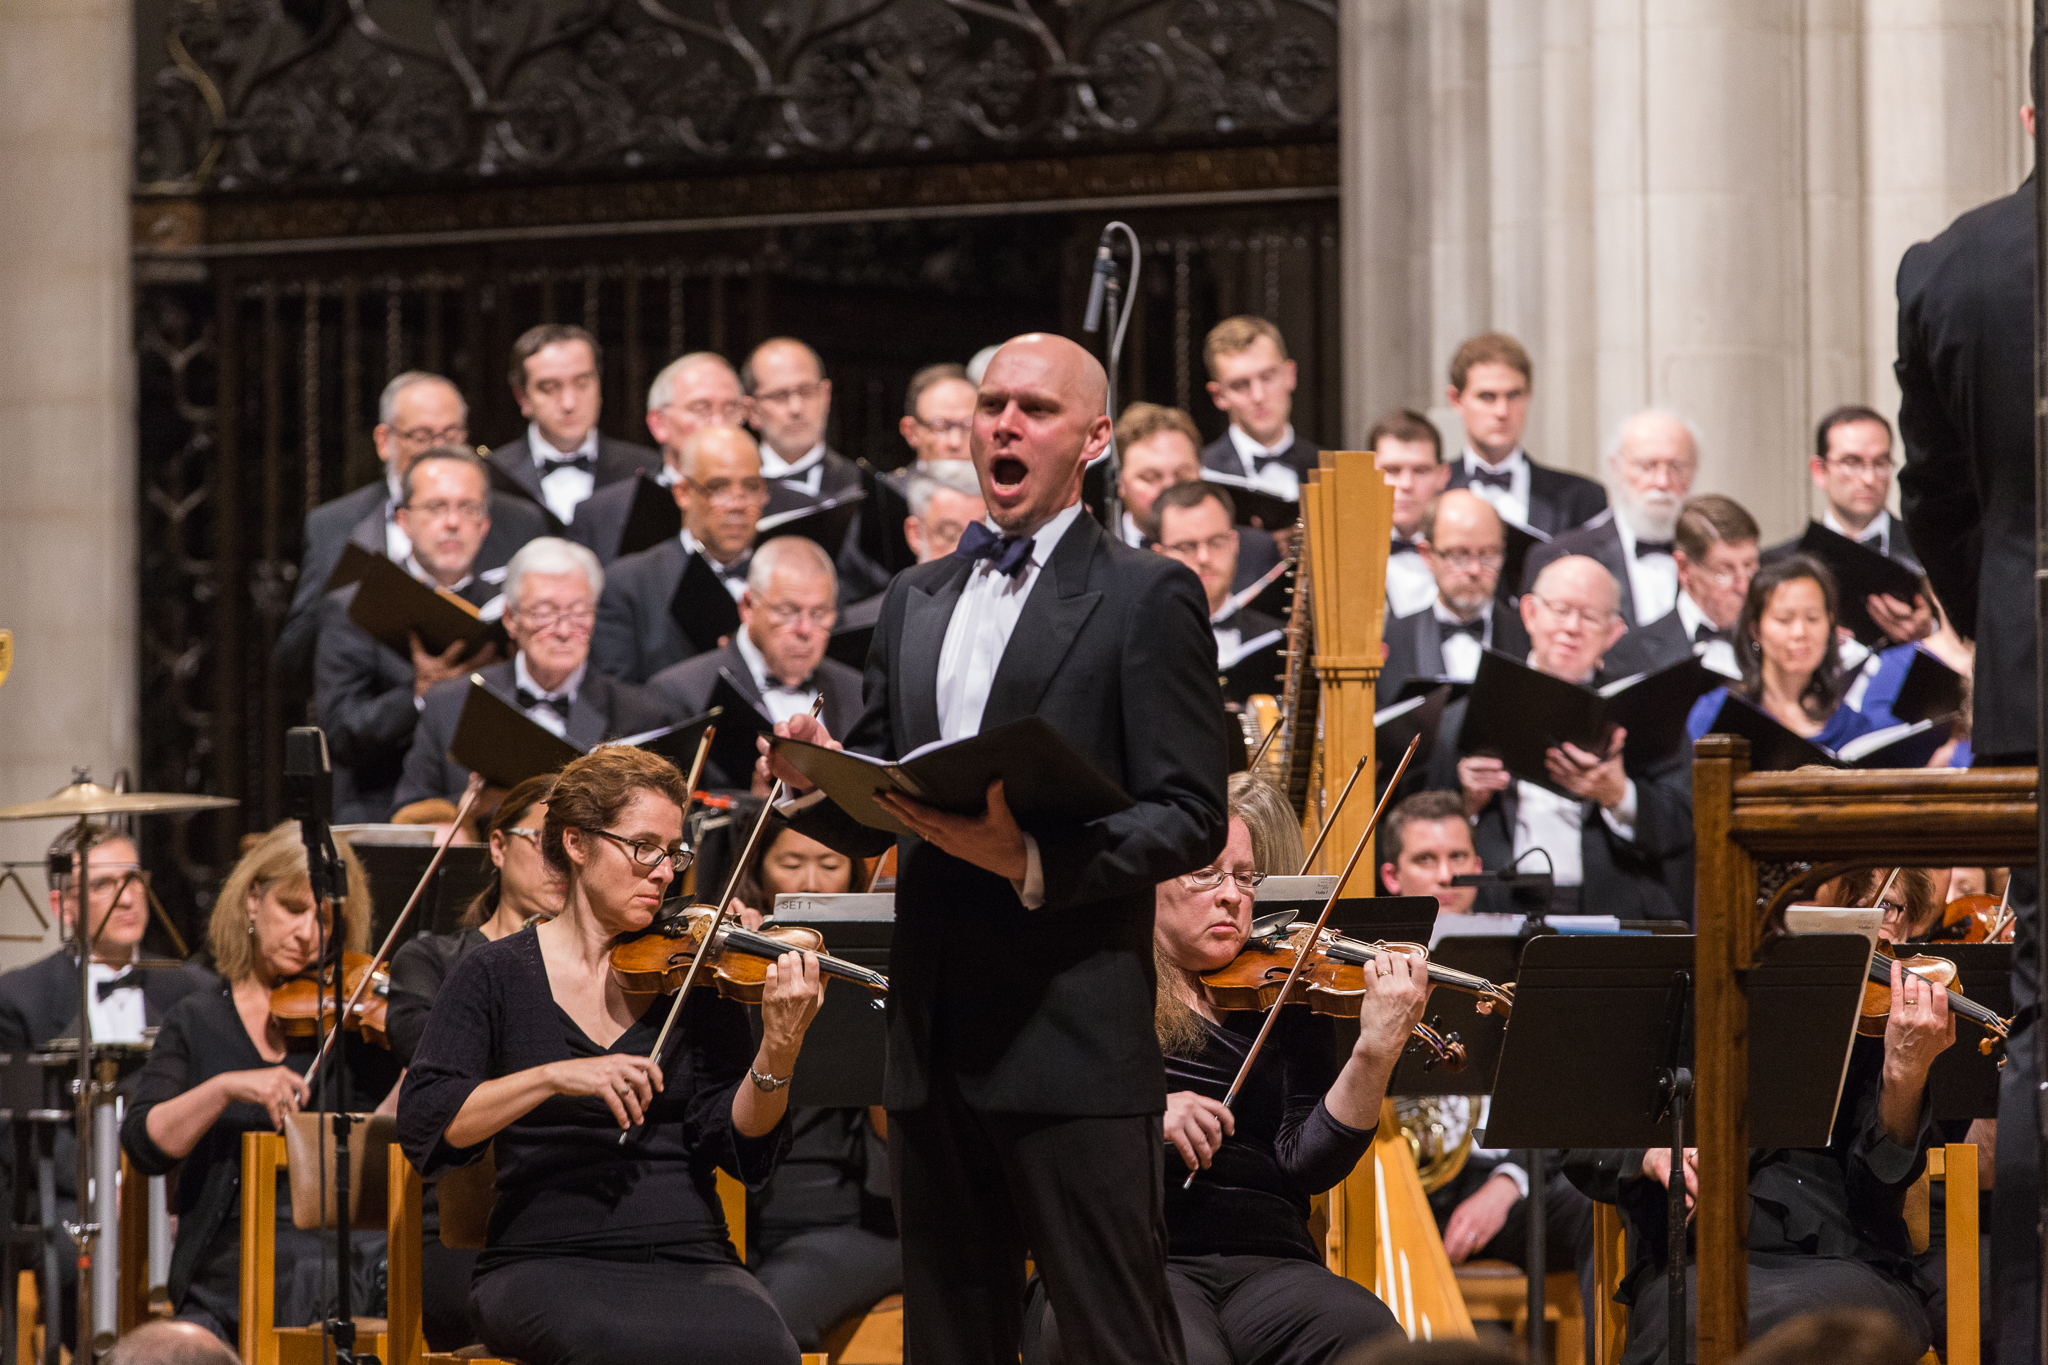 Dvořák  Te Deum  at the National Cathedral, Washington D.C.